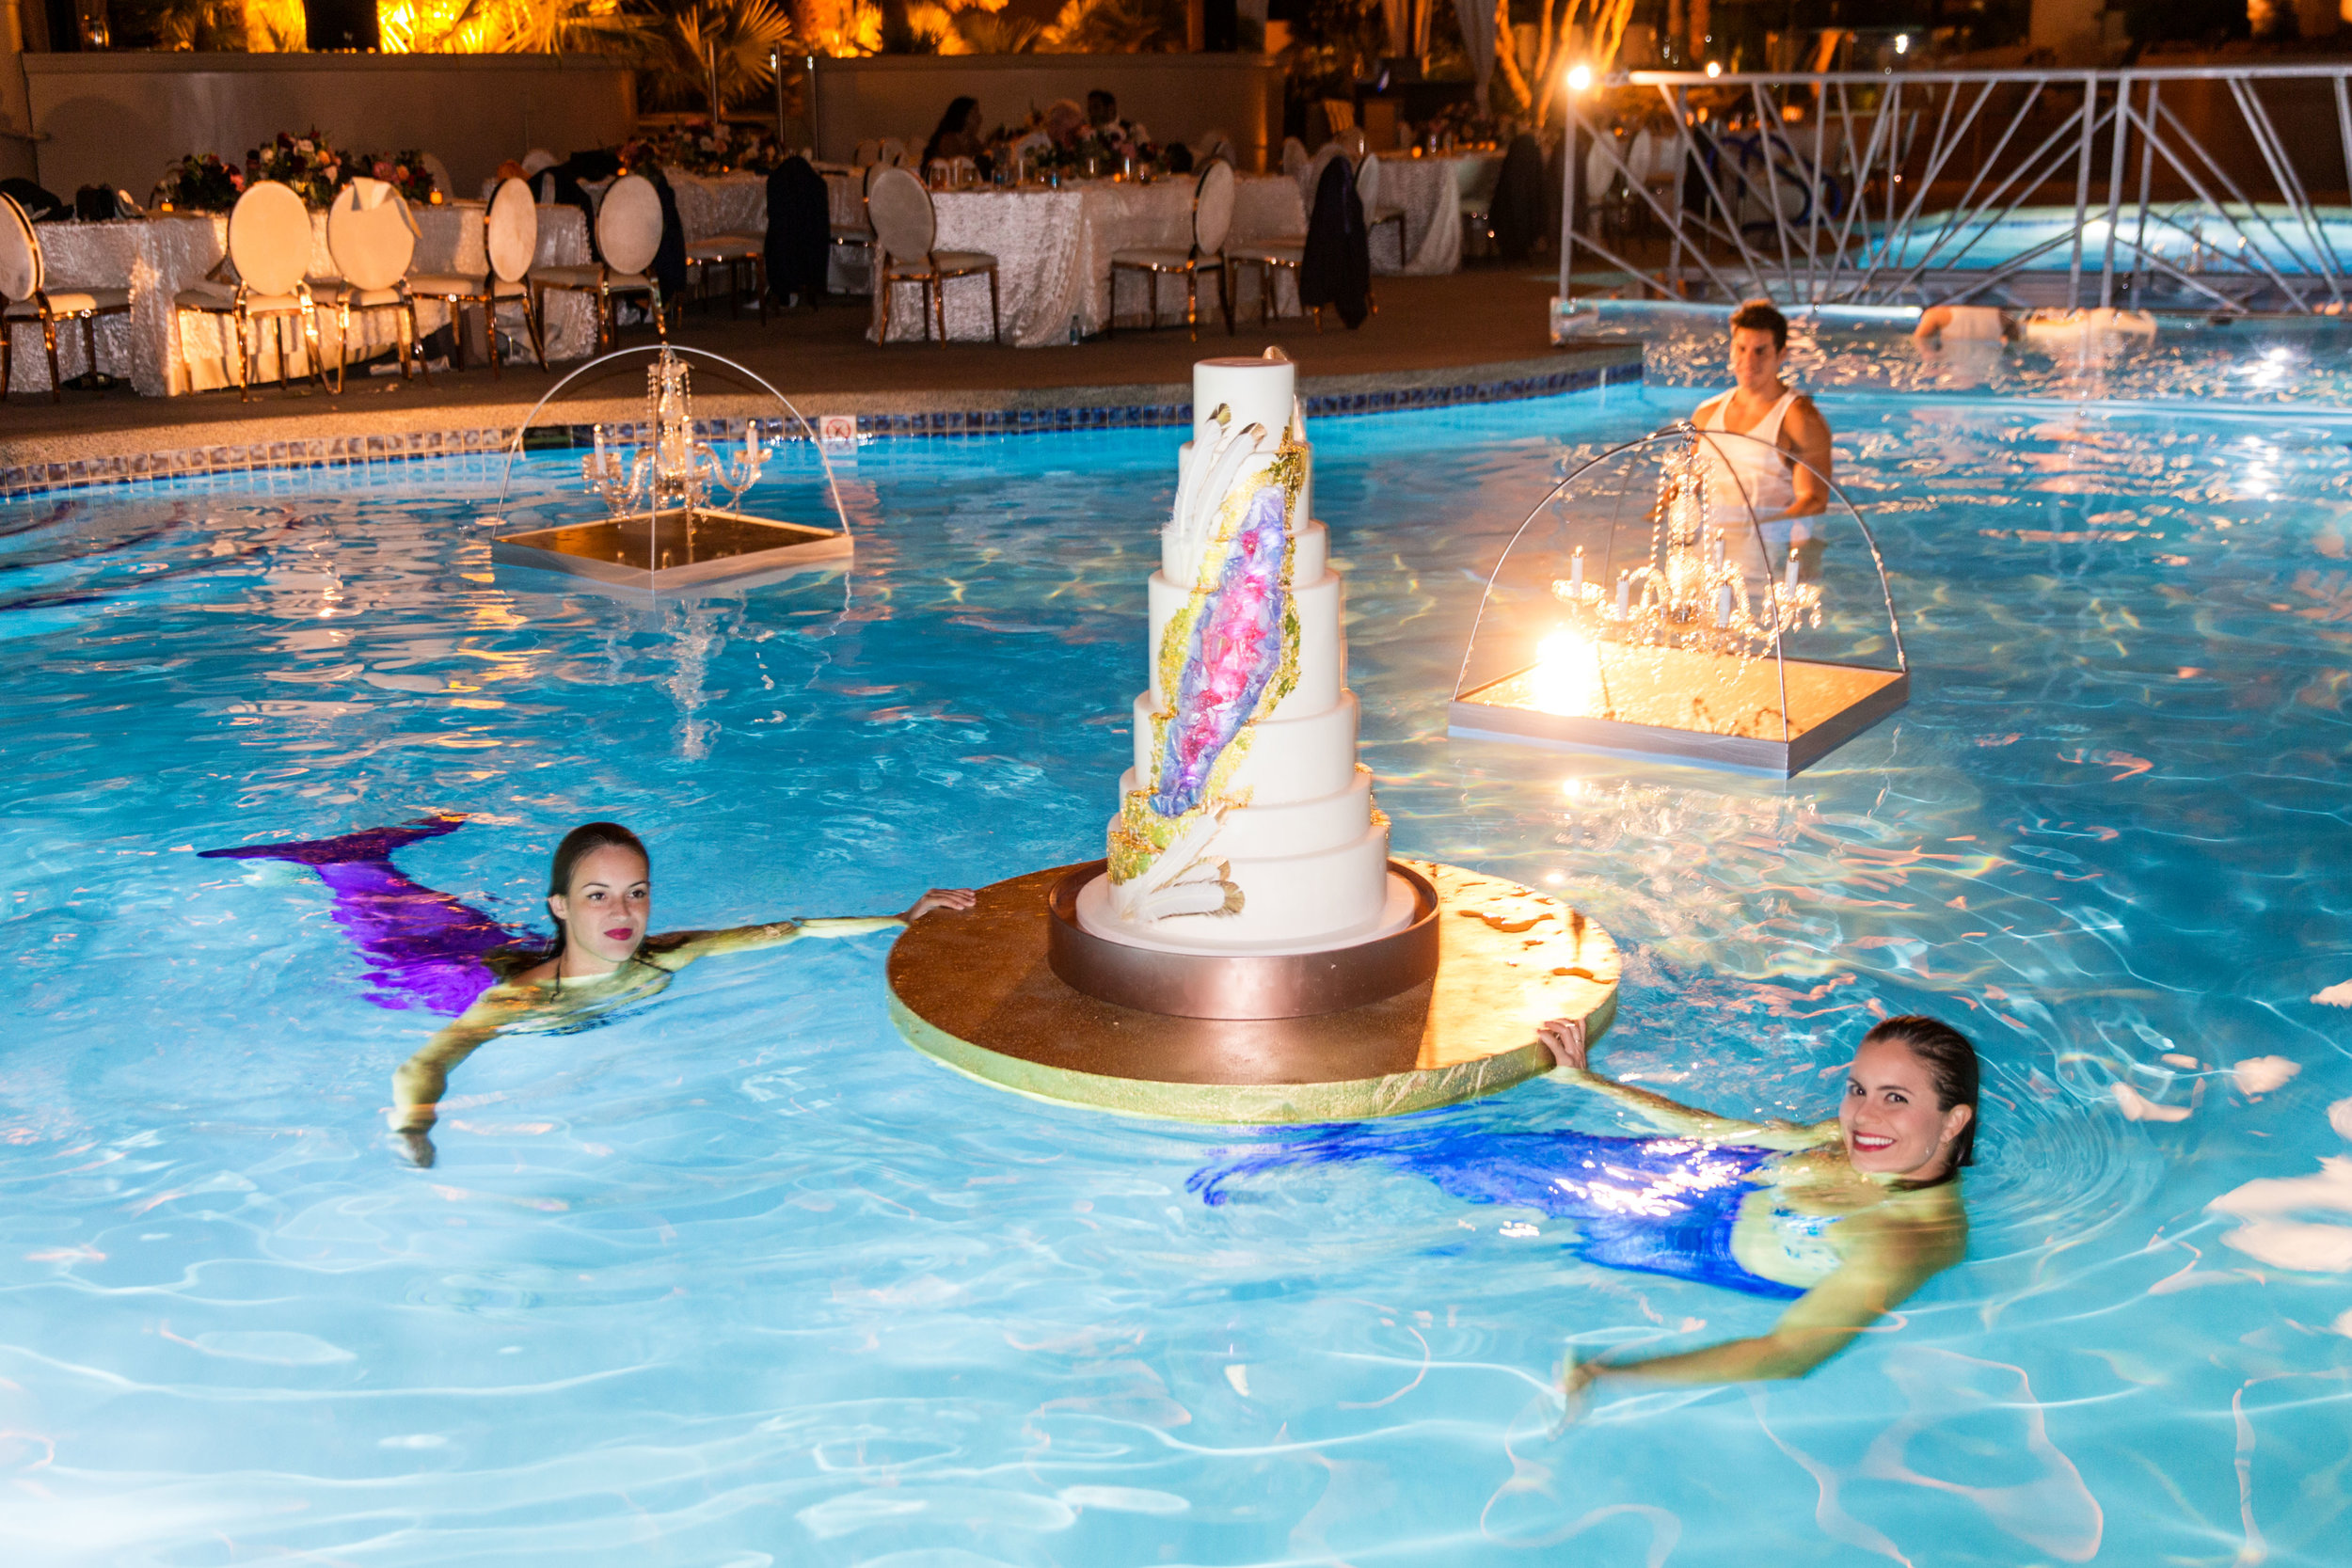 Geode Wedding cake brought to the edge by mermaids.First dance on bridge over pool.Jewel toned wedding centerpieces with gold accents.Wedding Planning by  Andrea Eppolito Events  · Photography by  Shandro Photo   · Wedding Venue  Four Seasons Las Vegas  · Floral and Decor by  Destination by Design  · Cake by  Four Seasons Las Vegas  · Chandeliers and Lighting by  LED Unplugged  · Dress by  Berta  and Menu by Alligator Soup